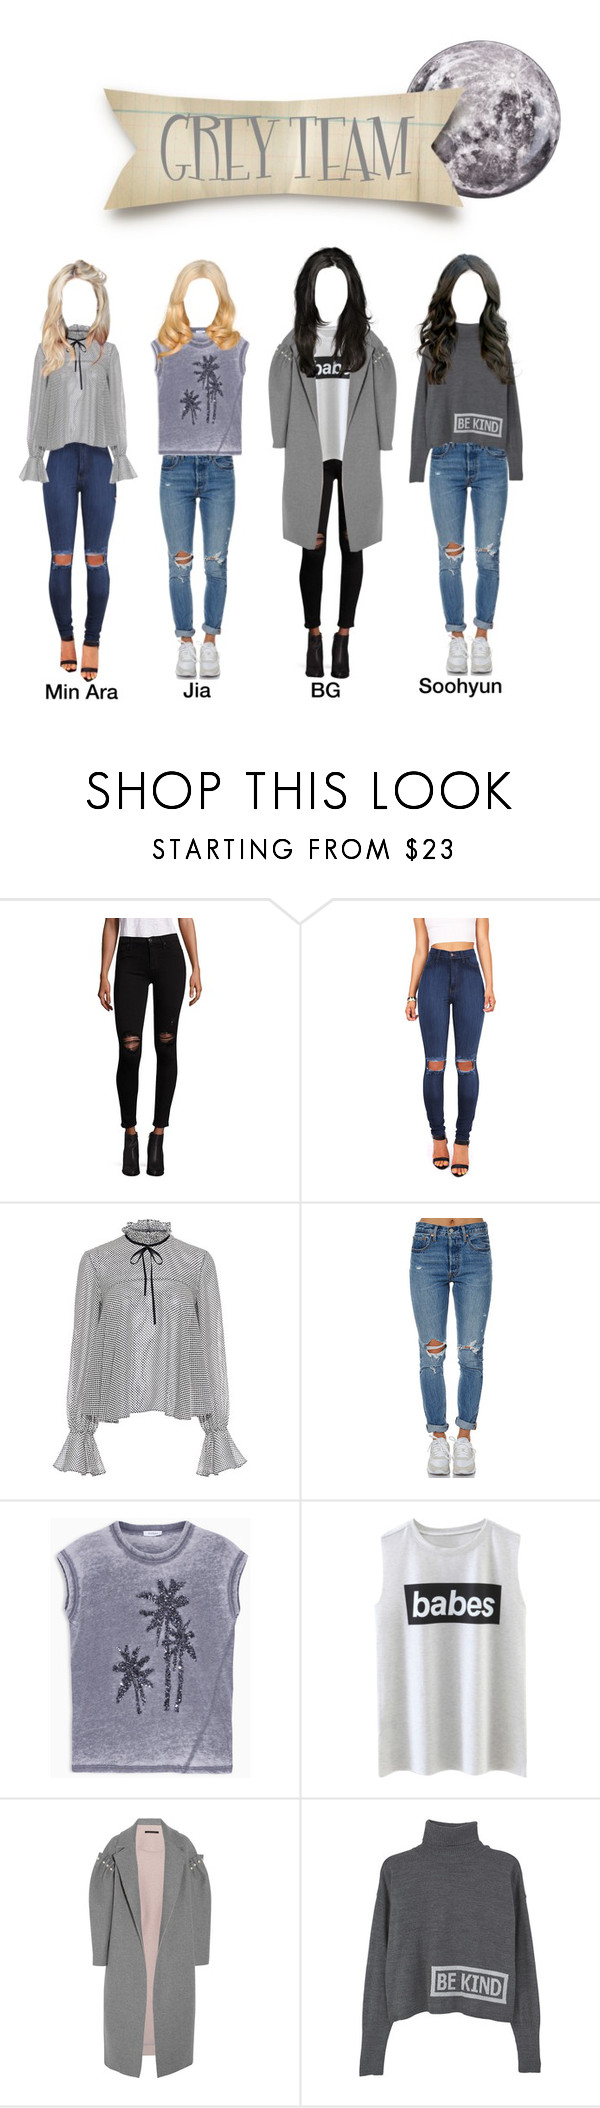 """""""[Rexanne Life] Grey Team"""" by rexanne-official ❤ liked on Polyvore featuring Hudson, Vibrant, Saloni, Levi's, Max&Co., Mother of Pearl, MANGO and Seletti"""